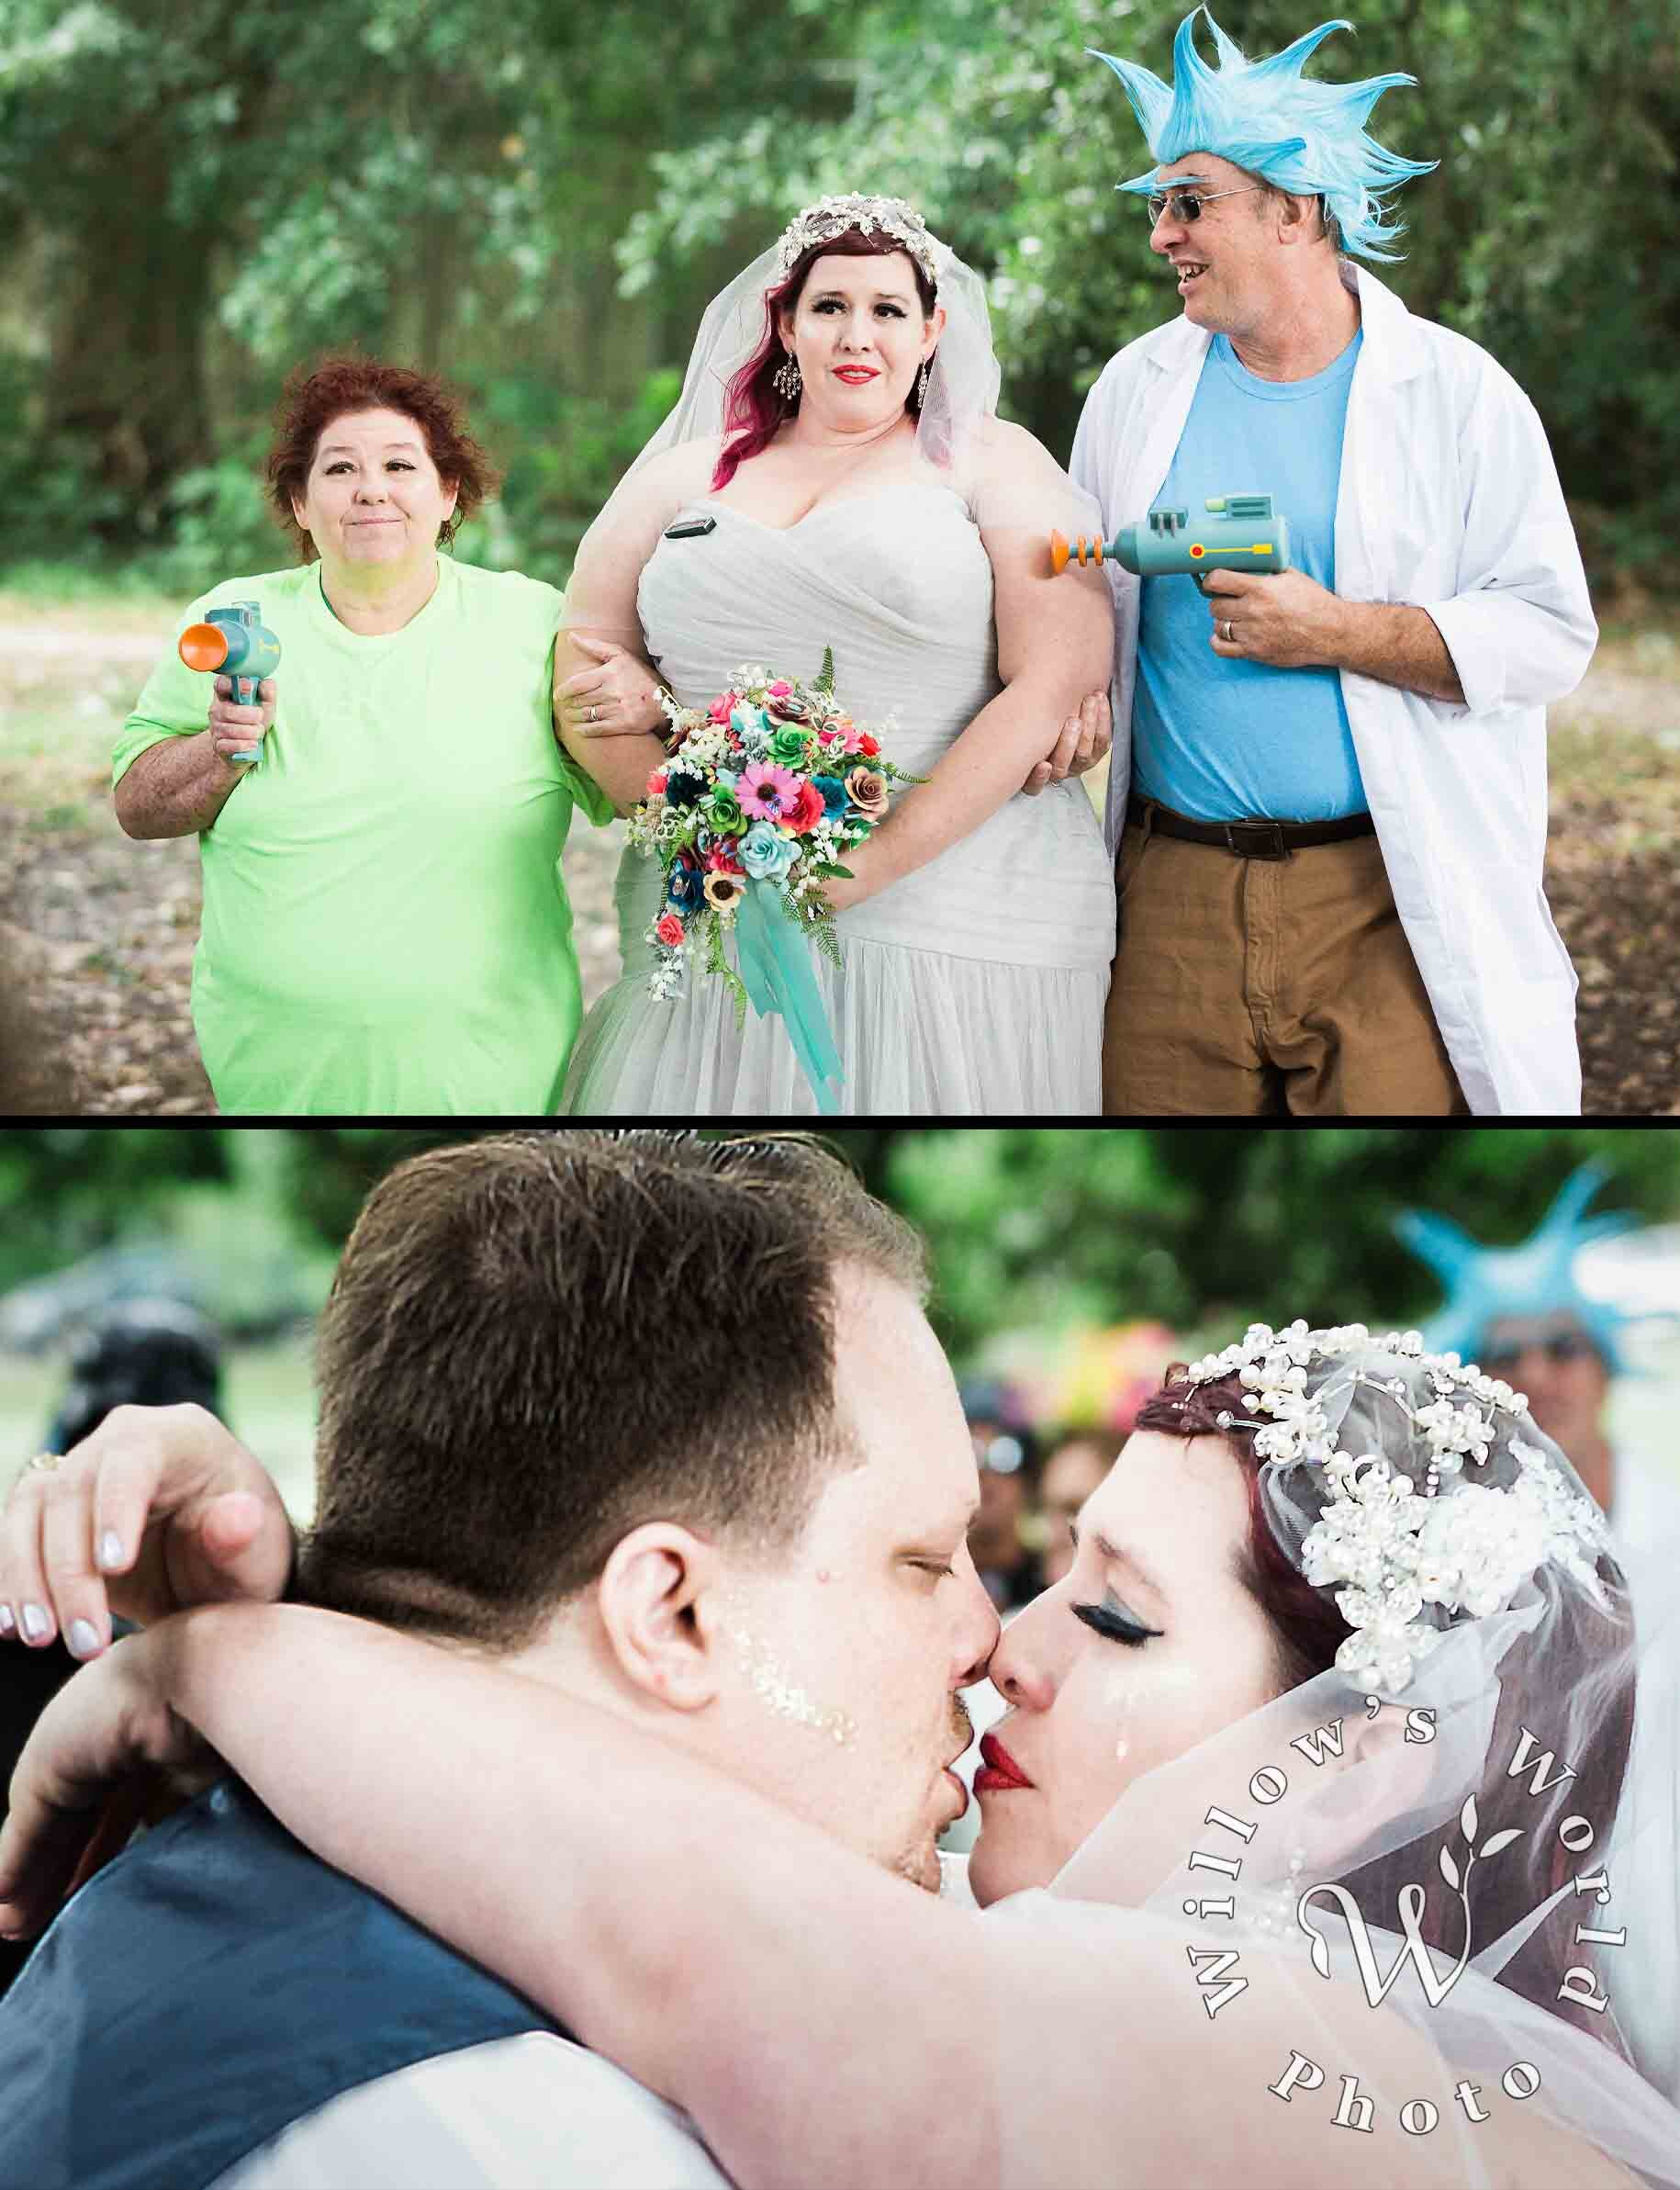 41-Tree-of-Life-Audubon-Park-New-Orleans-Outdoor-Cosplay-Wedding-Ceremony-Willows-World-Photo-2.jpg